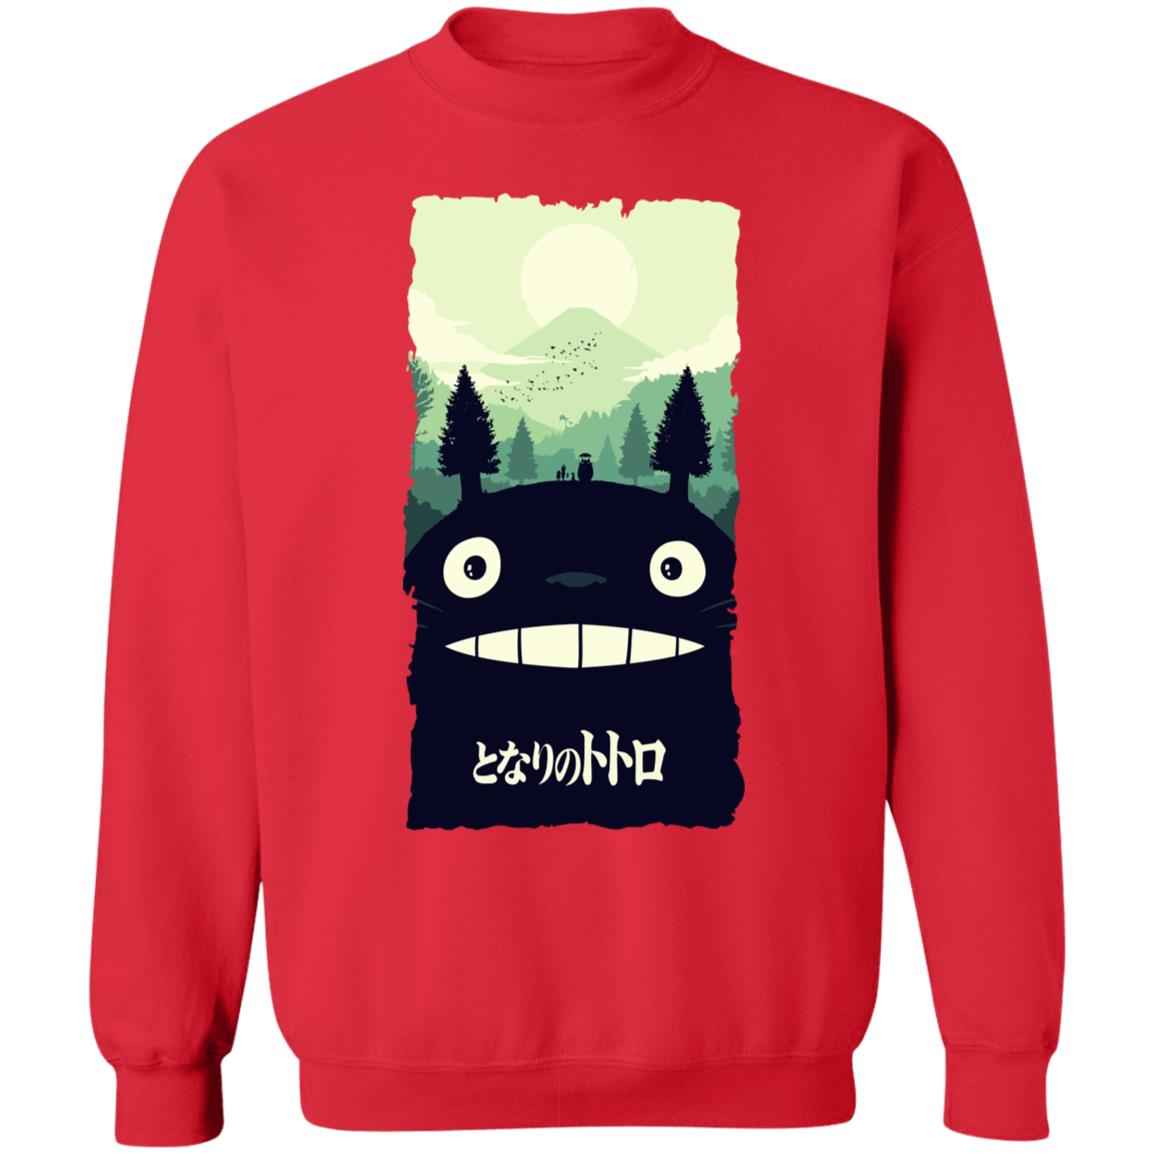 My Neighbor Totoro – Totoro Hill Sweatshirt